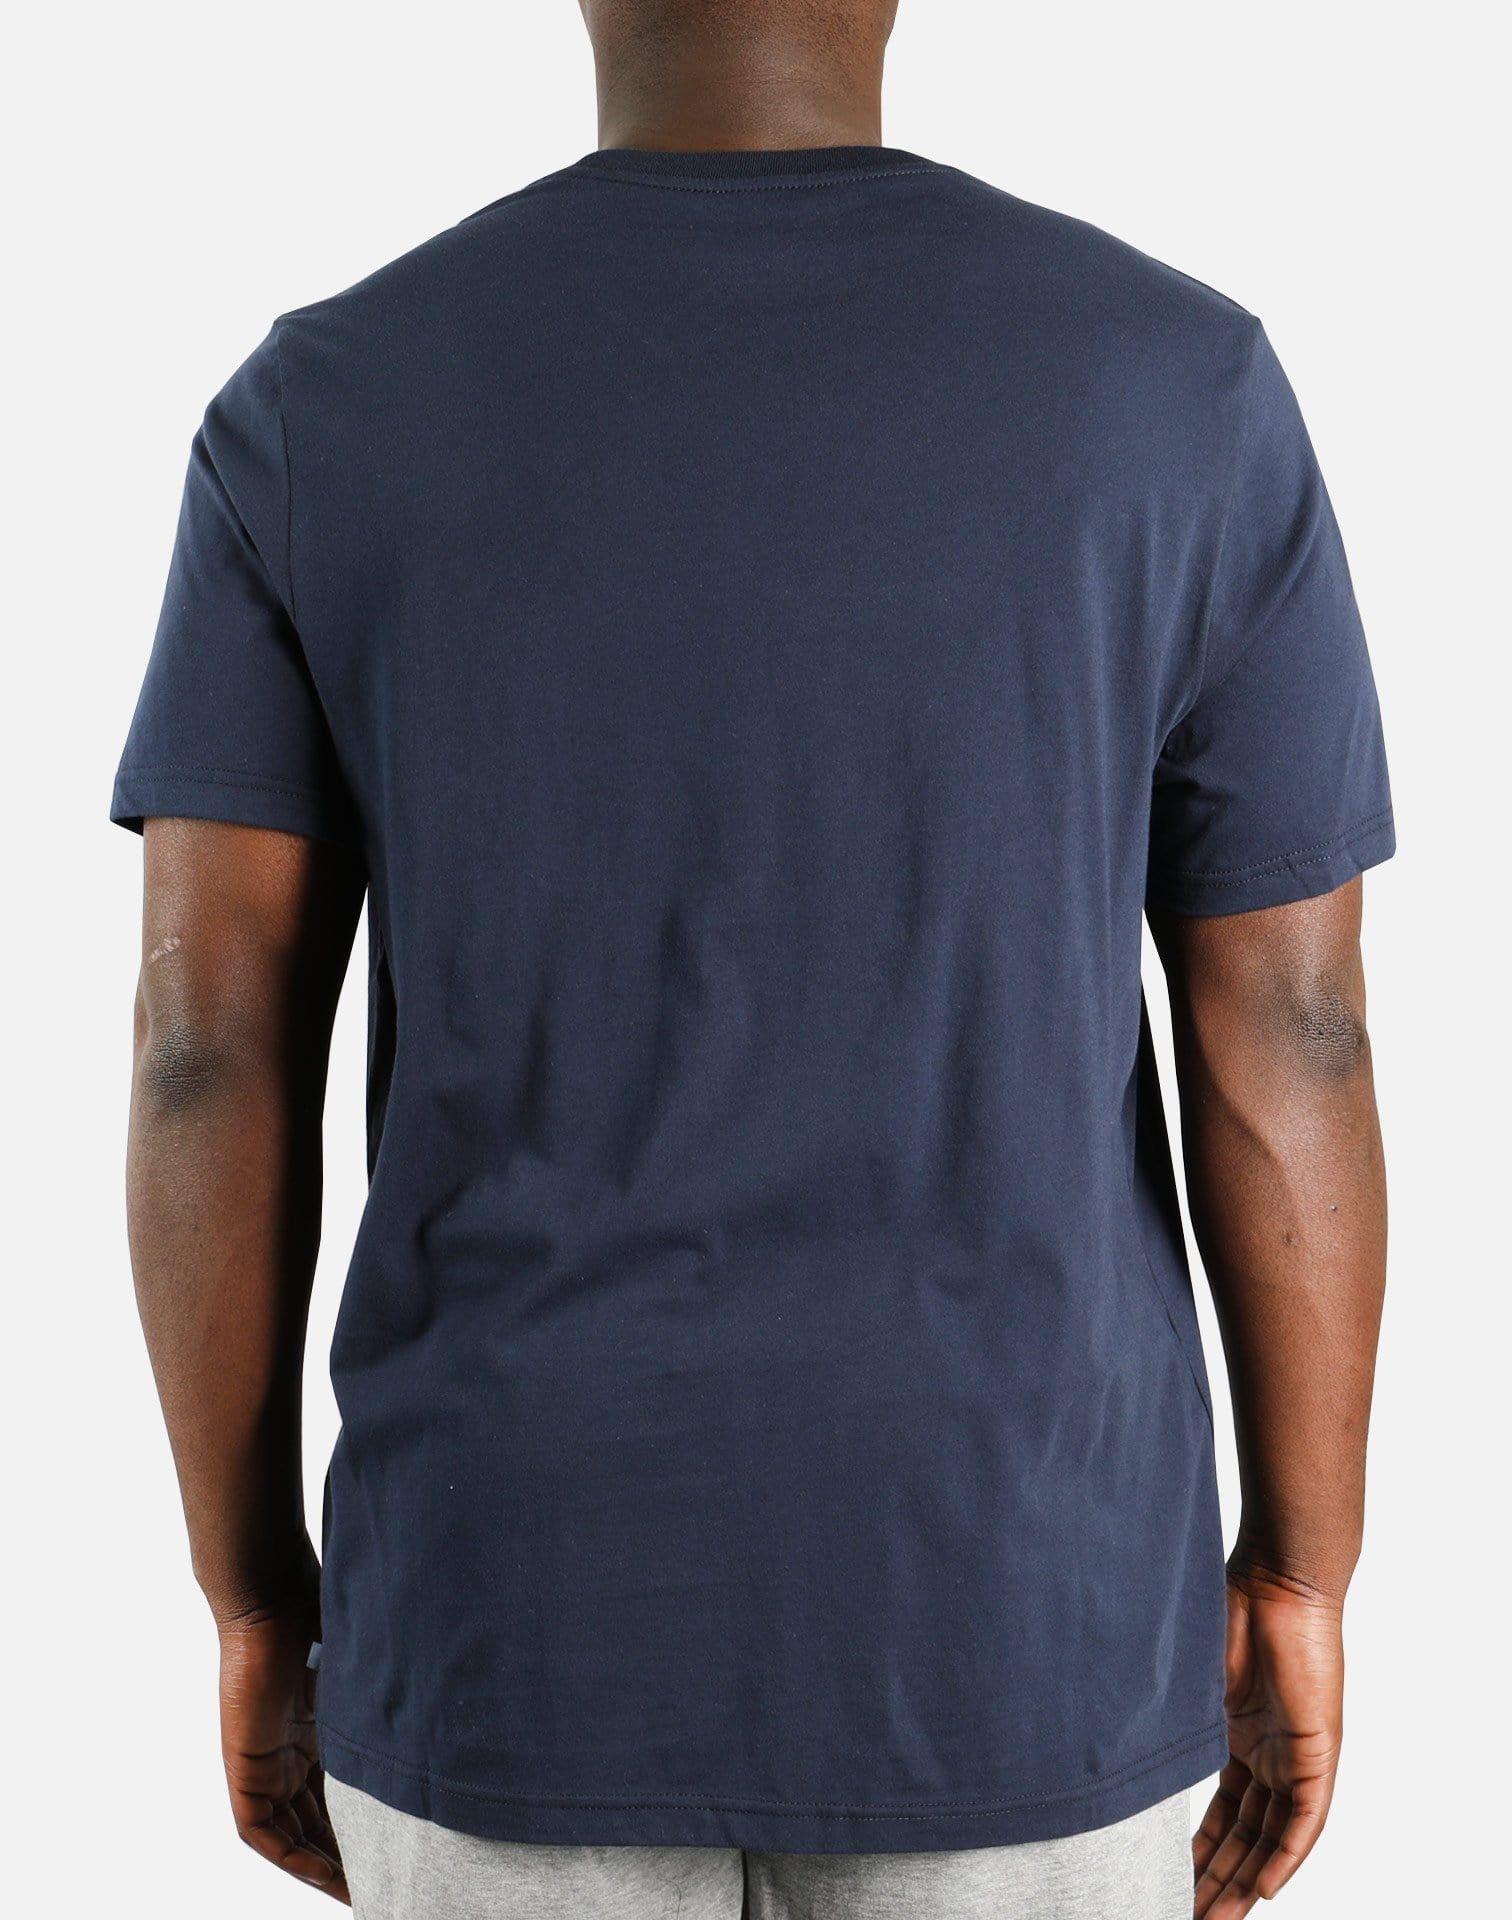 Tommy Hilfiger Graphic Tee (Navy)